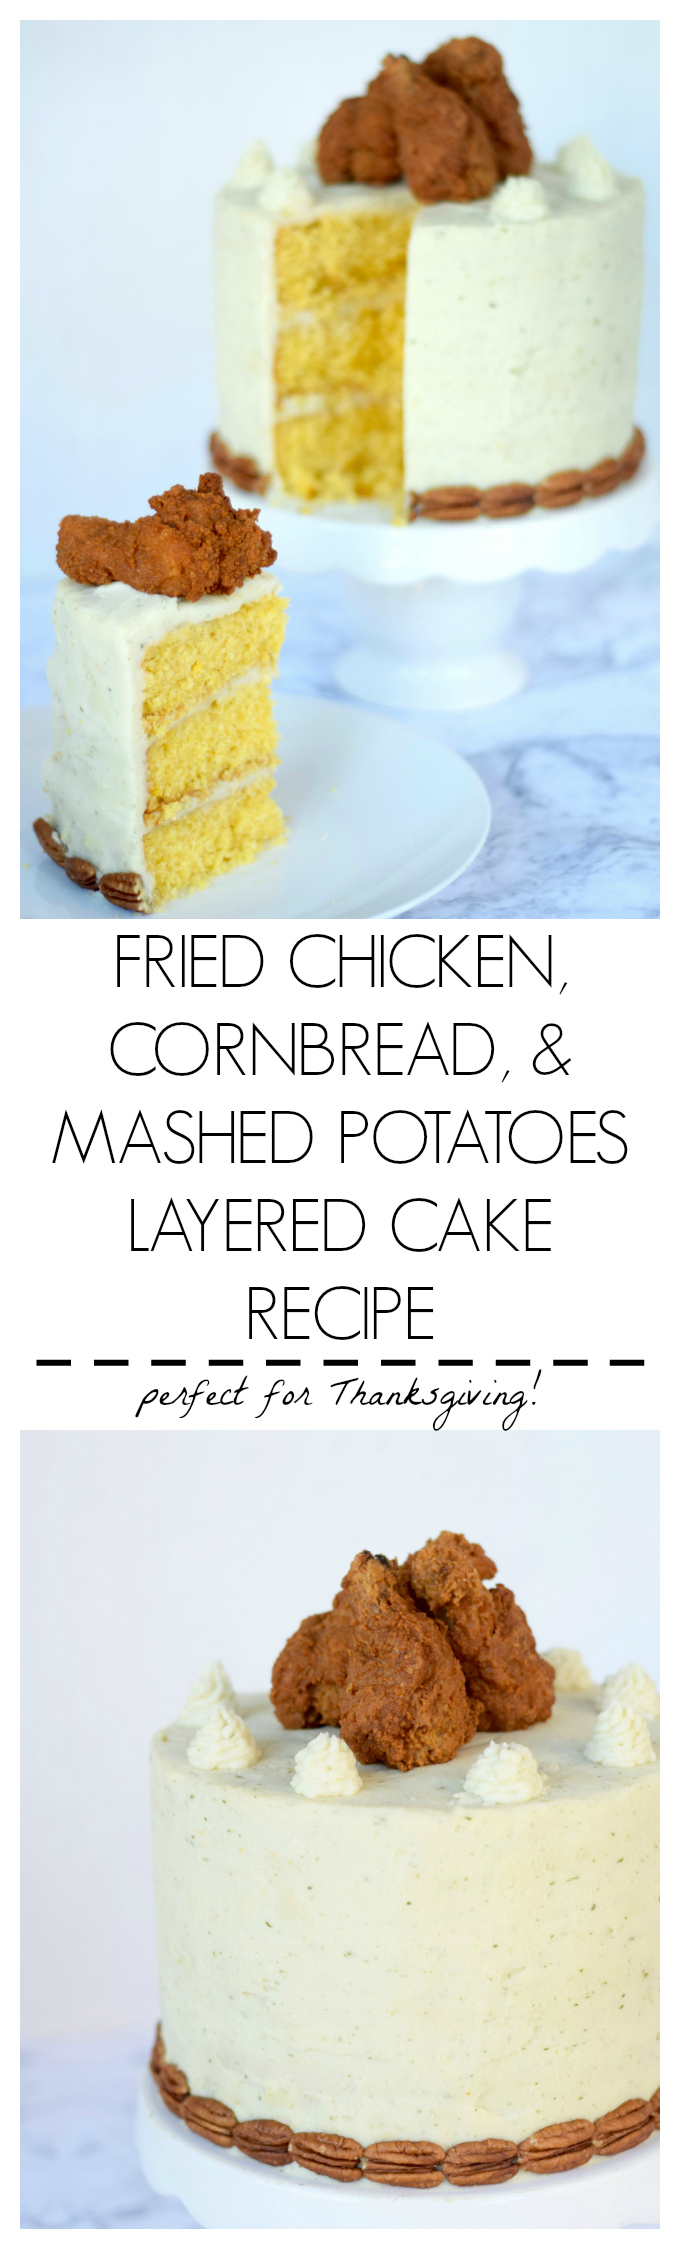 Fried Chicken Cornbread & Mashed Potatoes Layered Cake Recipe